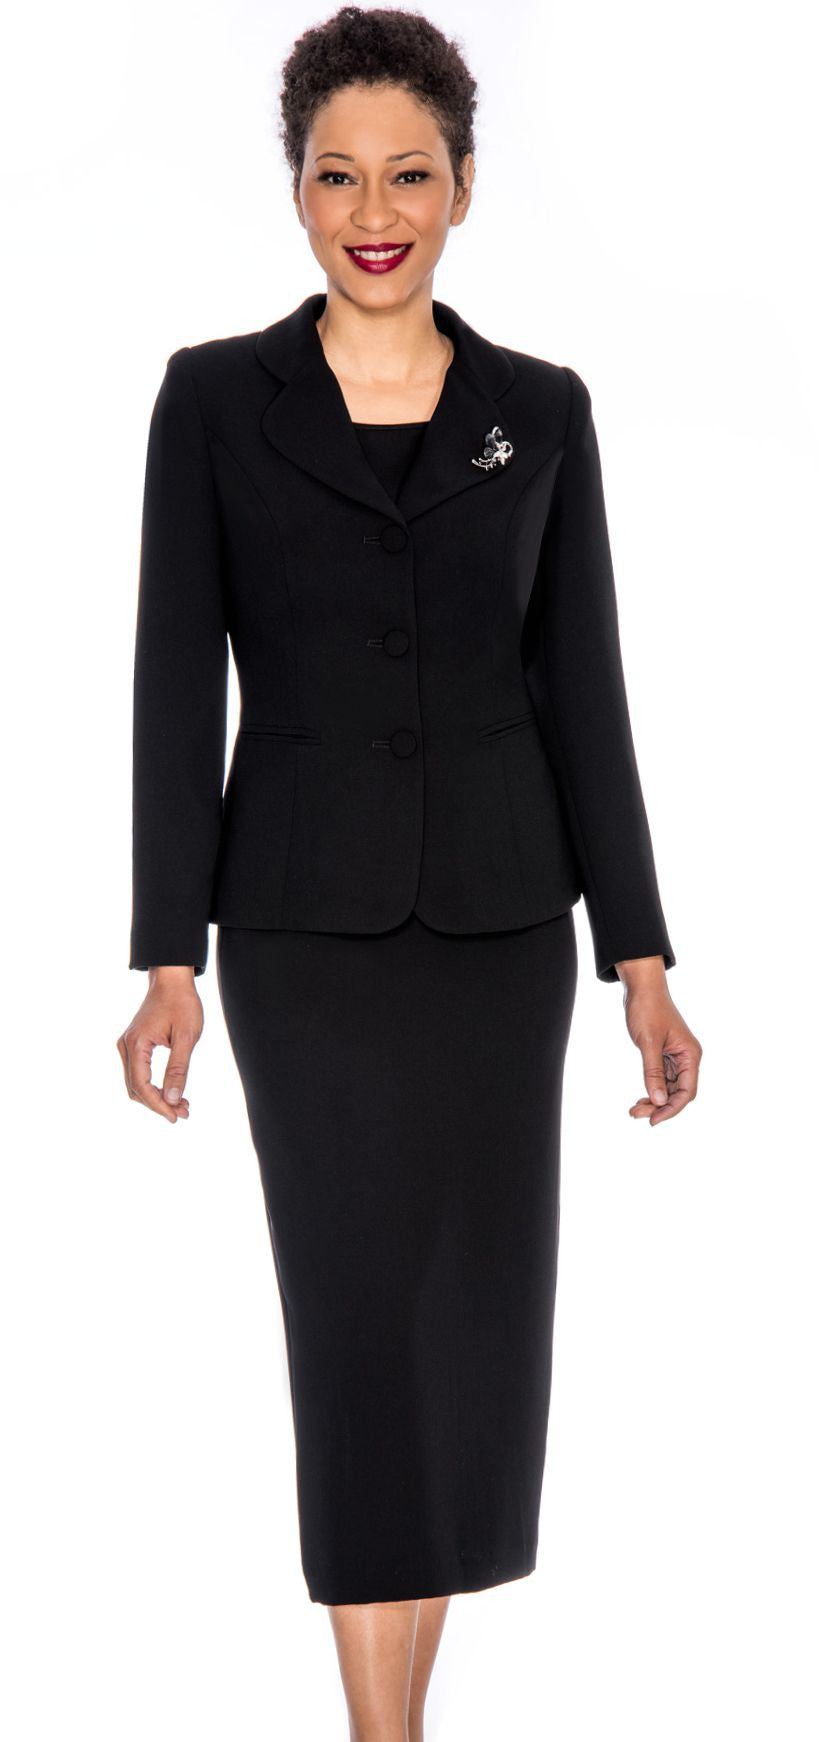 Giovanna Usher Suit 0824- Black - Church Suits For Less